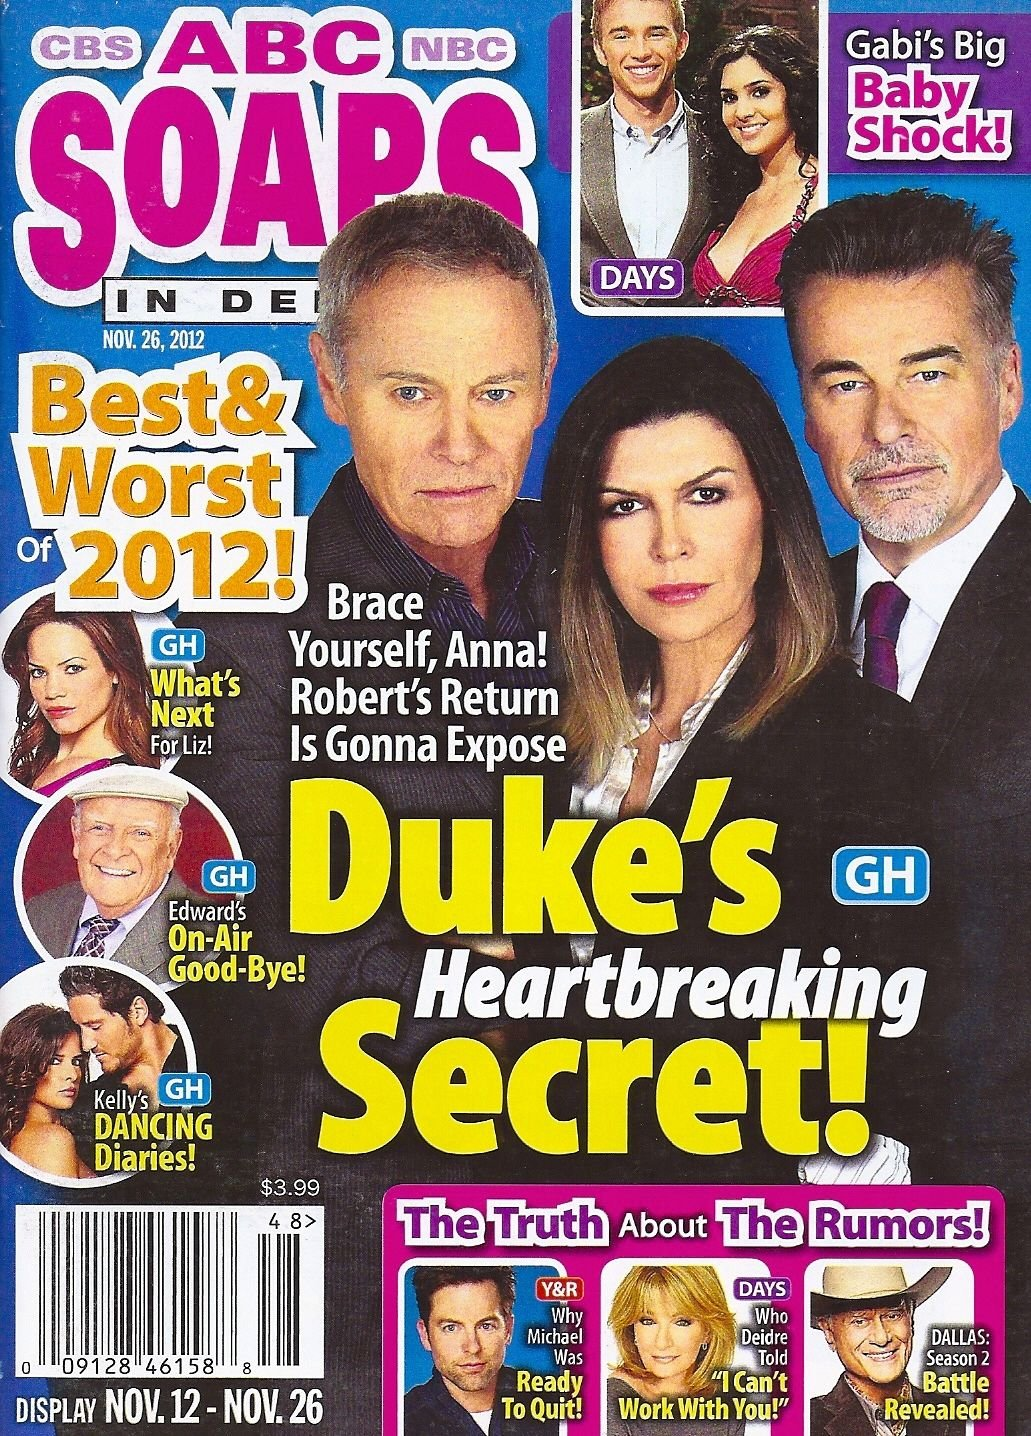 The Best Worst Of 2012 Tristan Rogers Finola Hughes Ian Buchanan November 26 2012 Abc Soaps In Depth Dawn Owens Dawn Owens Amazon Com Books